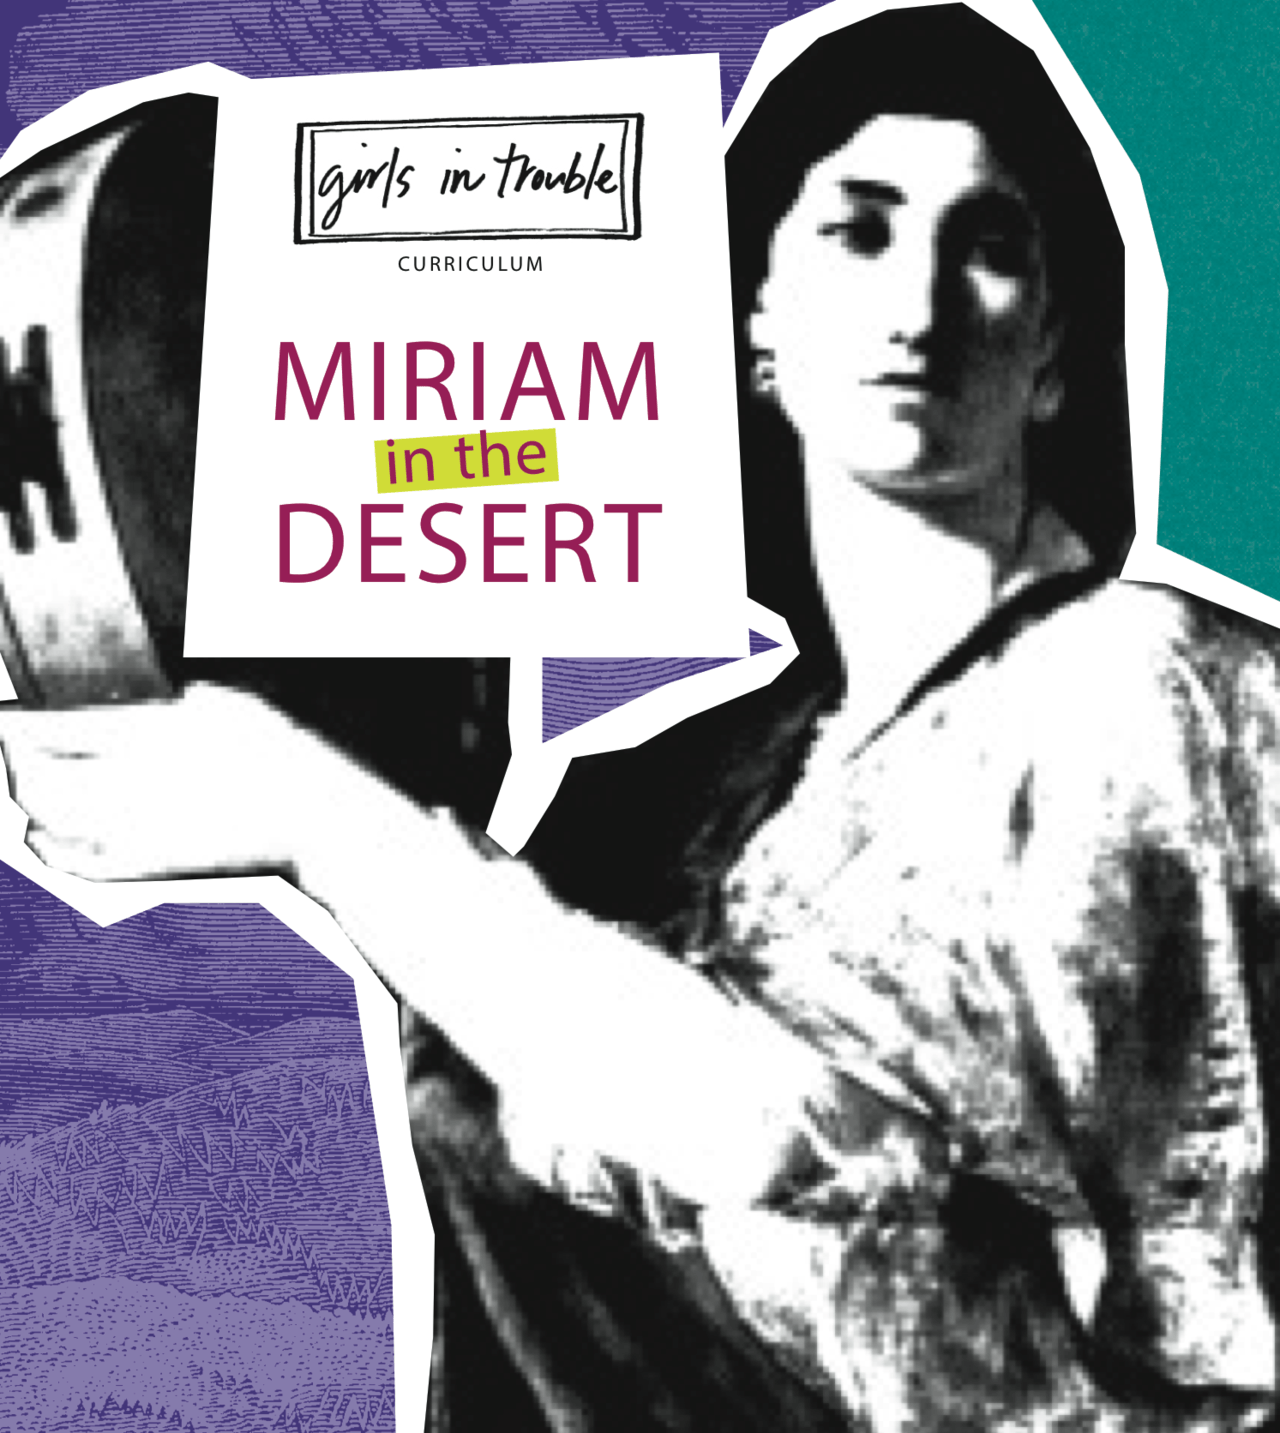 miriam_cropped.png